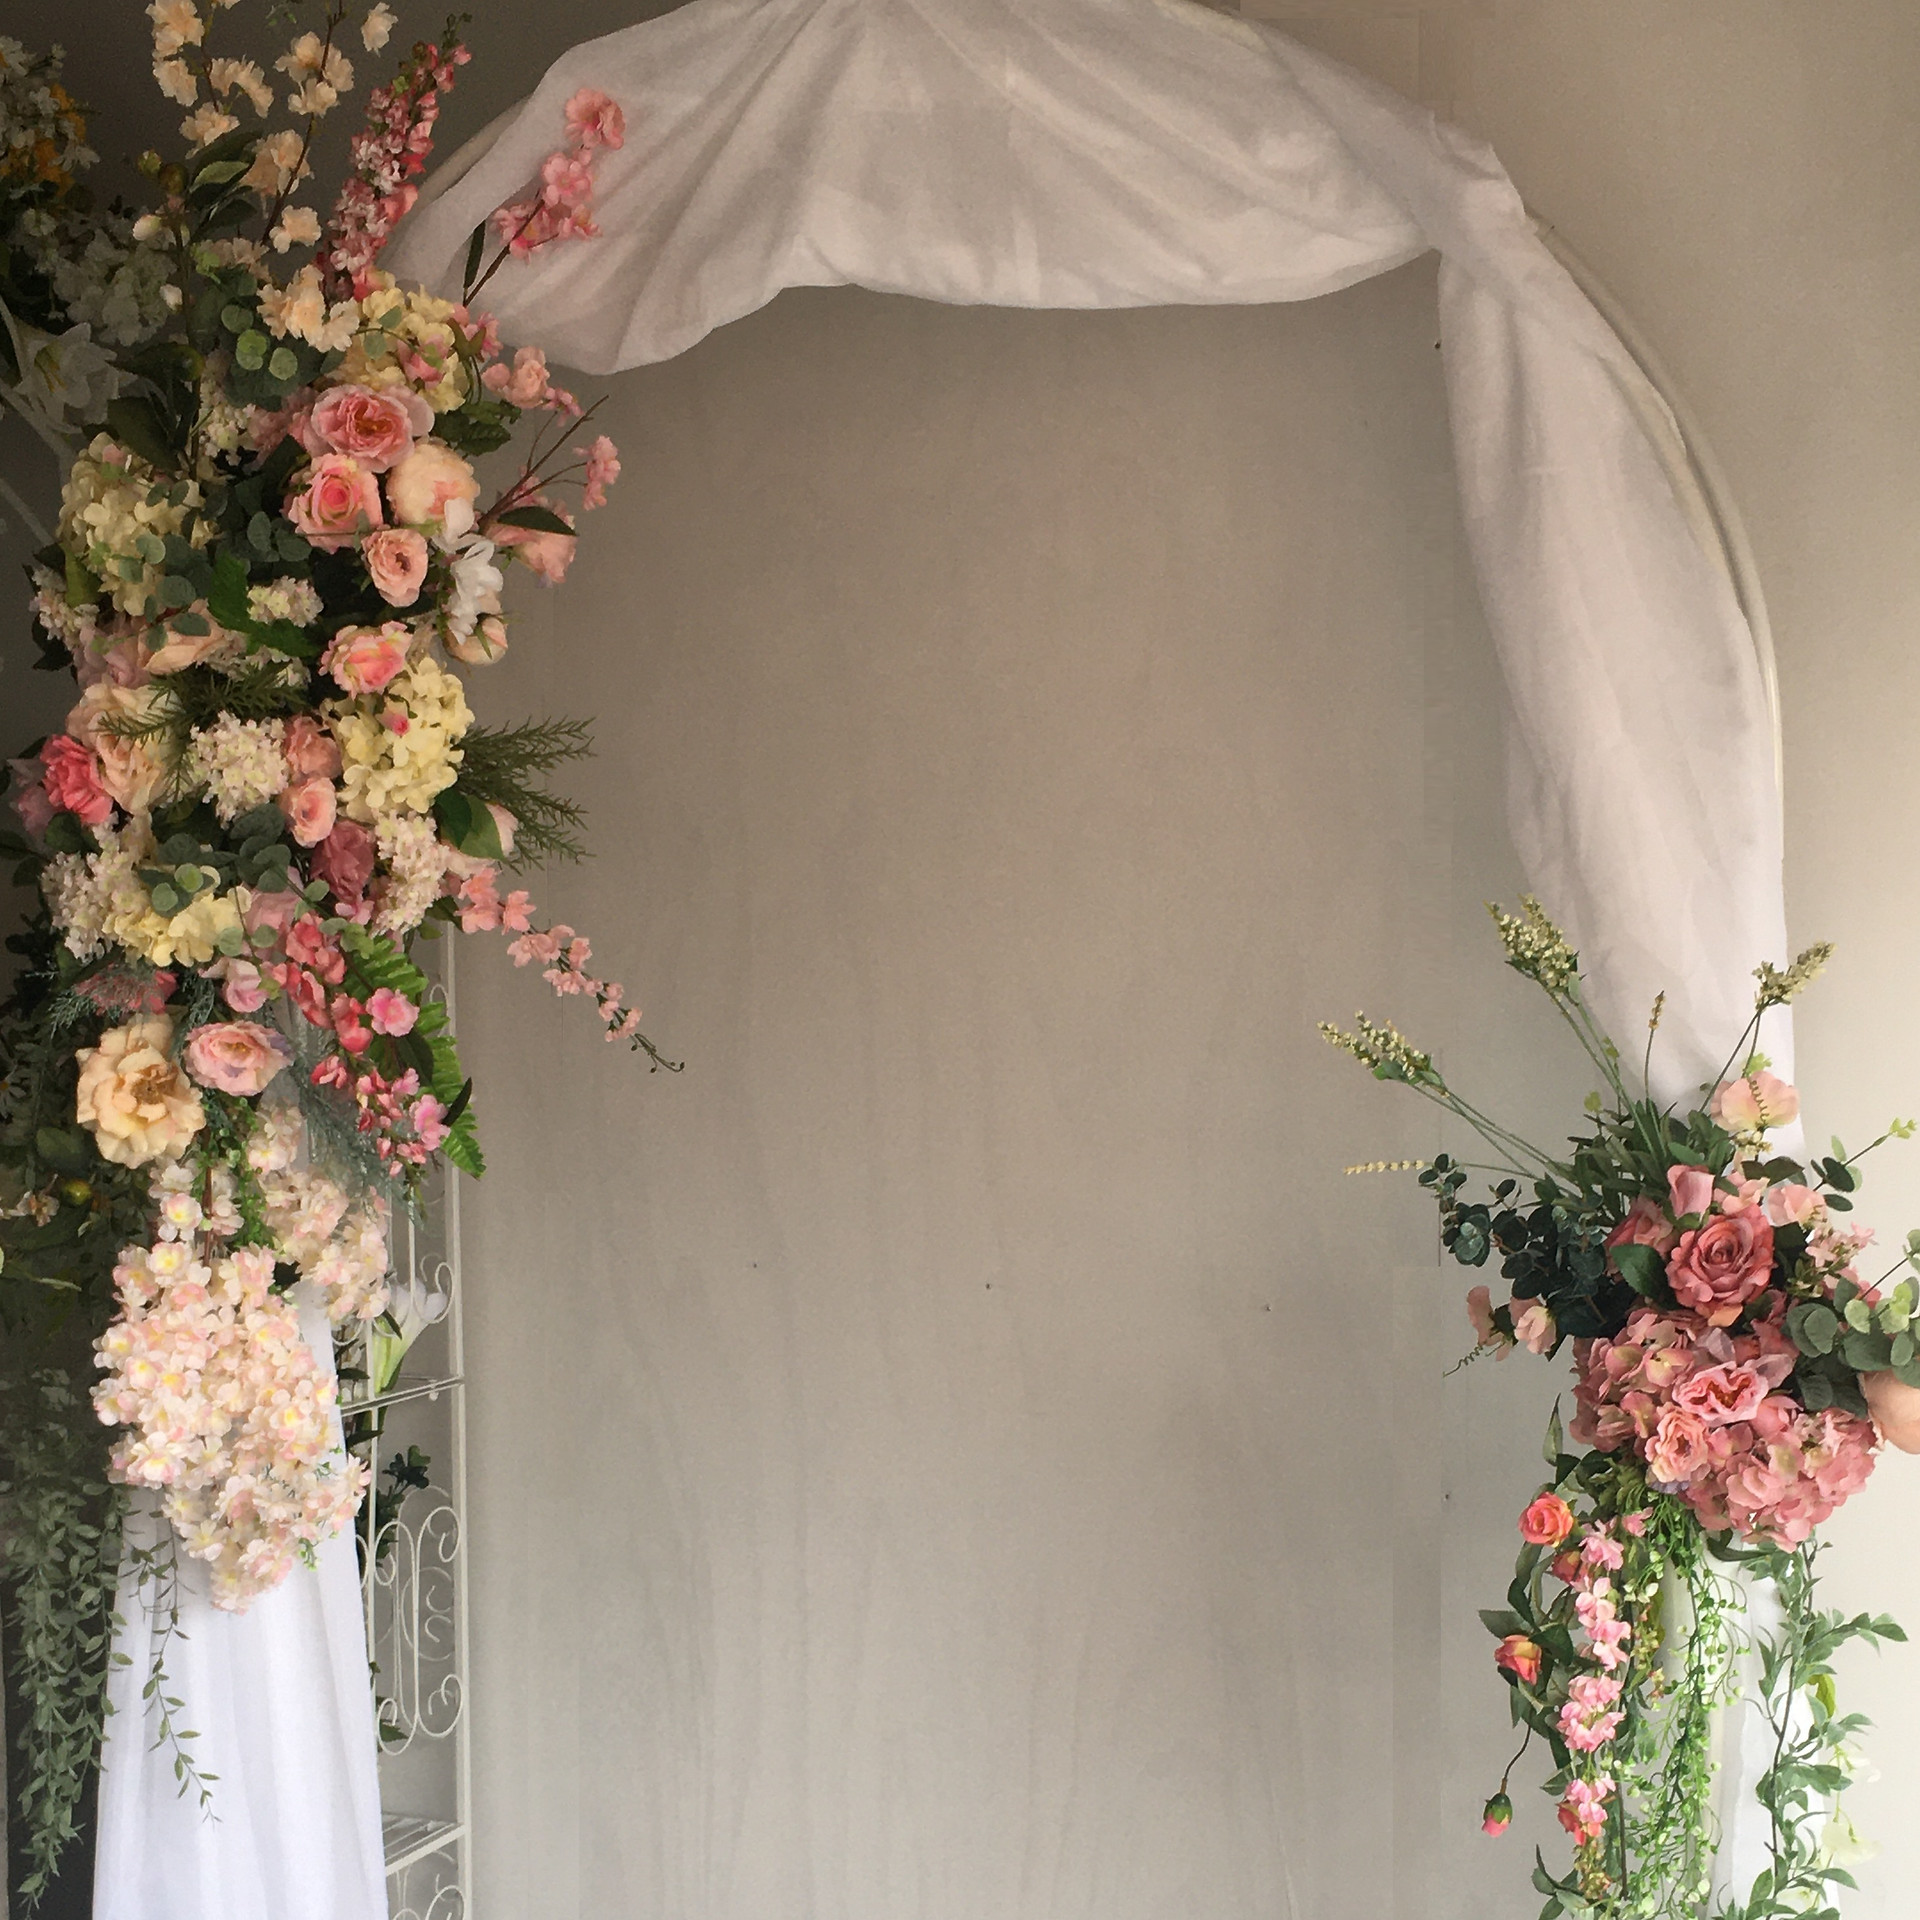 Spring Fling Wedding Arch